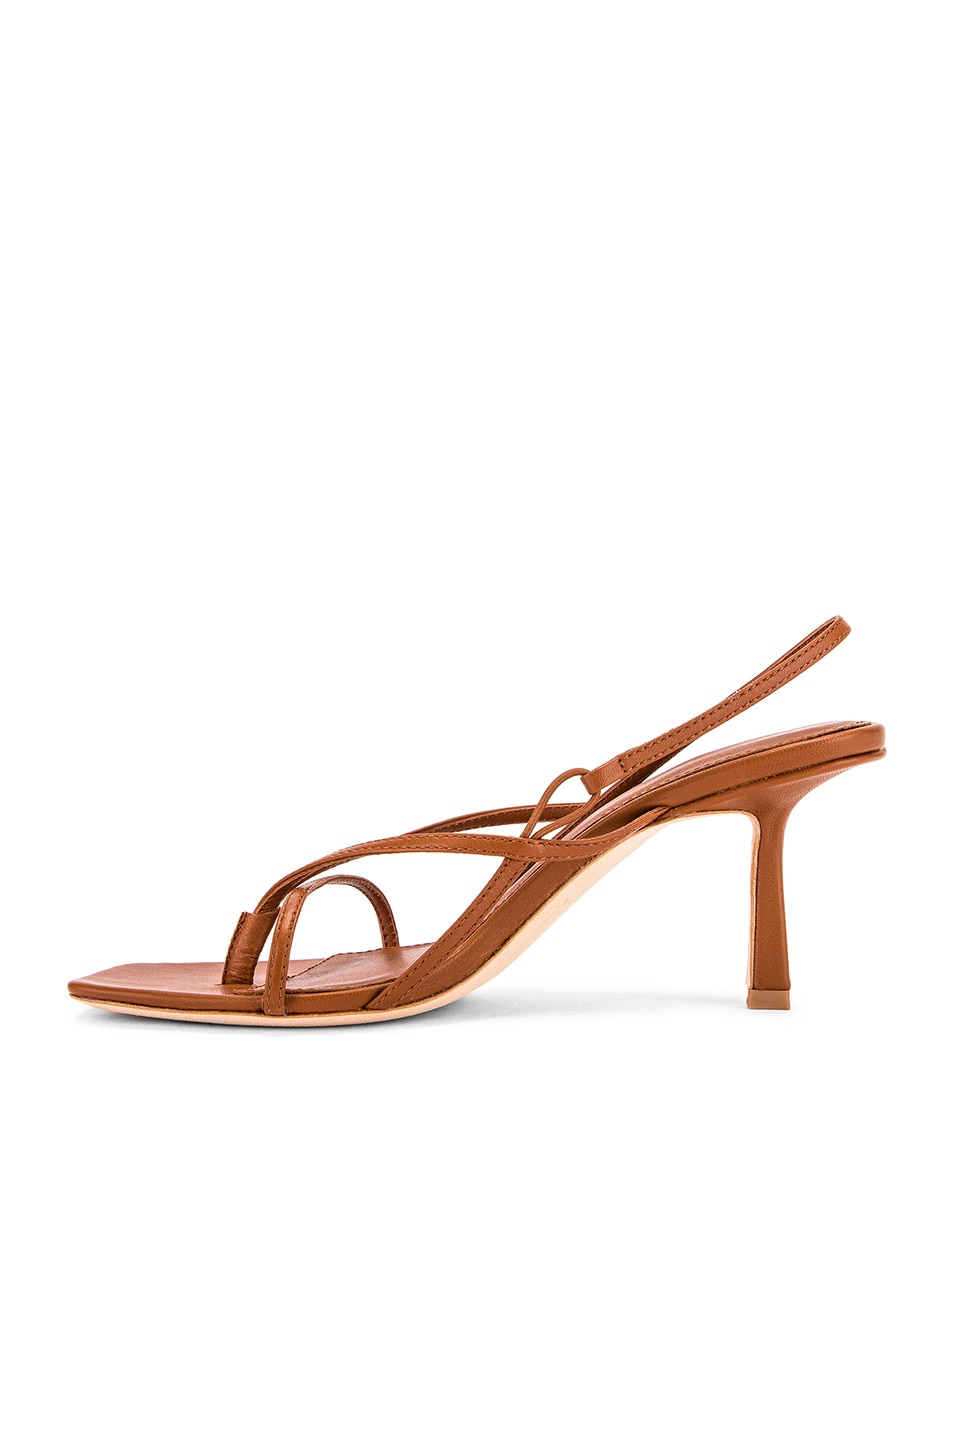 Image 5 of Studio Amelia 2.4 Flip Flop Heel in Tan Nappa Leather